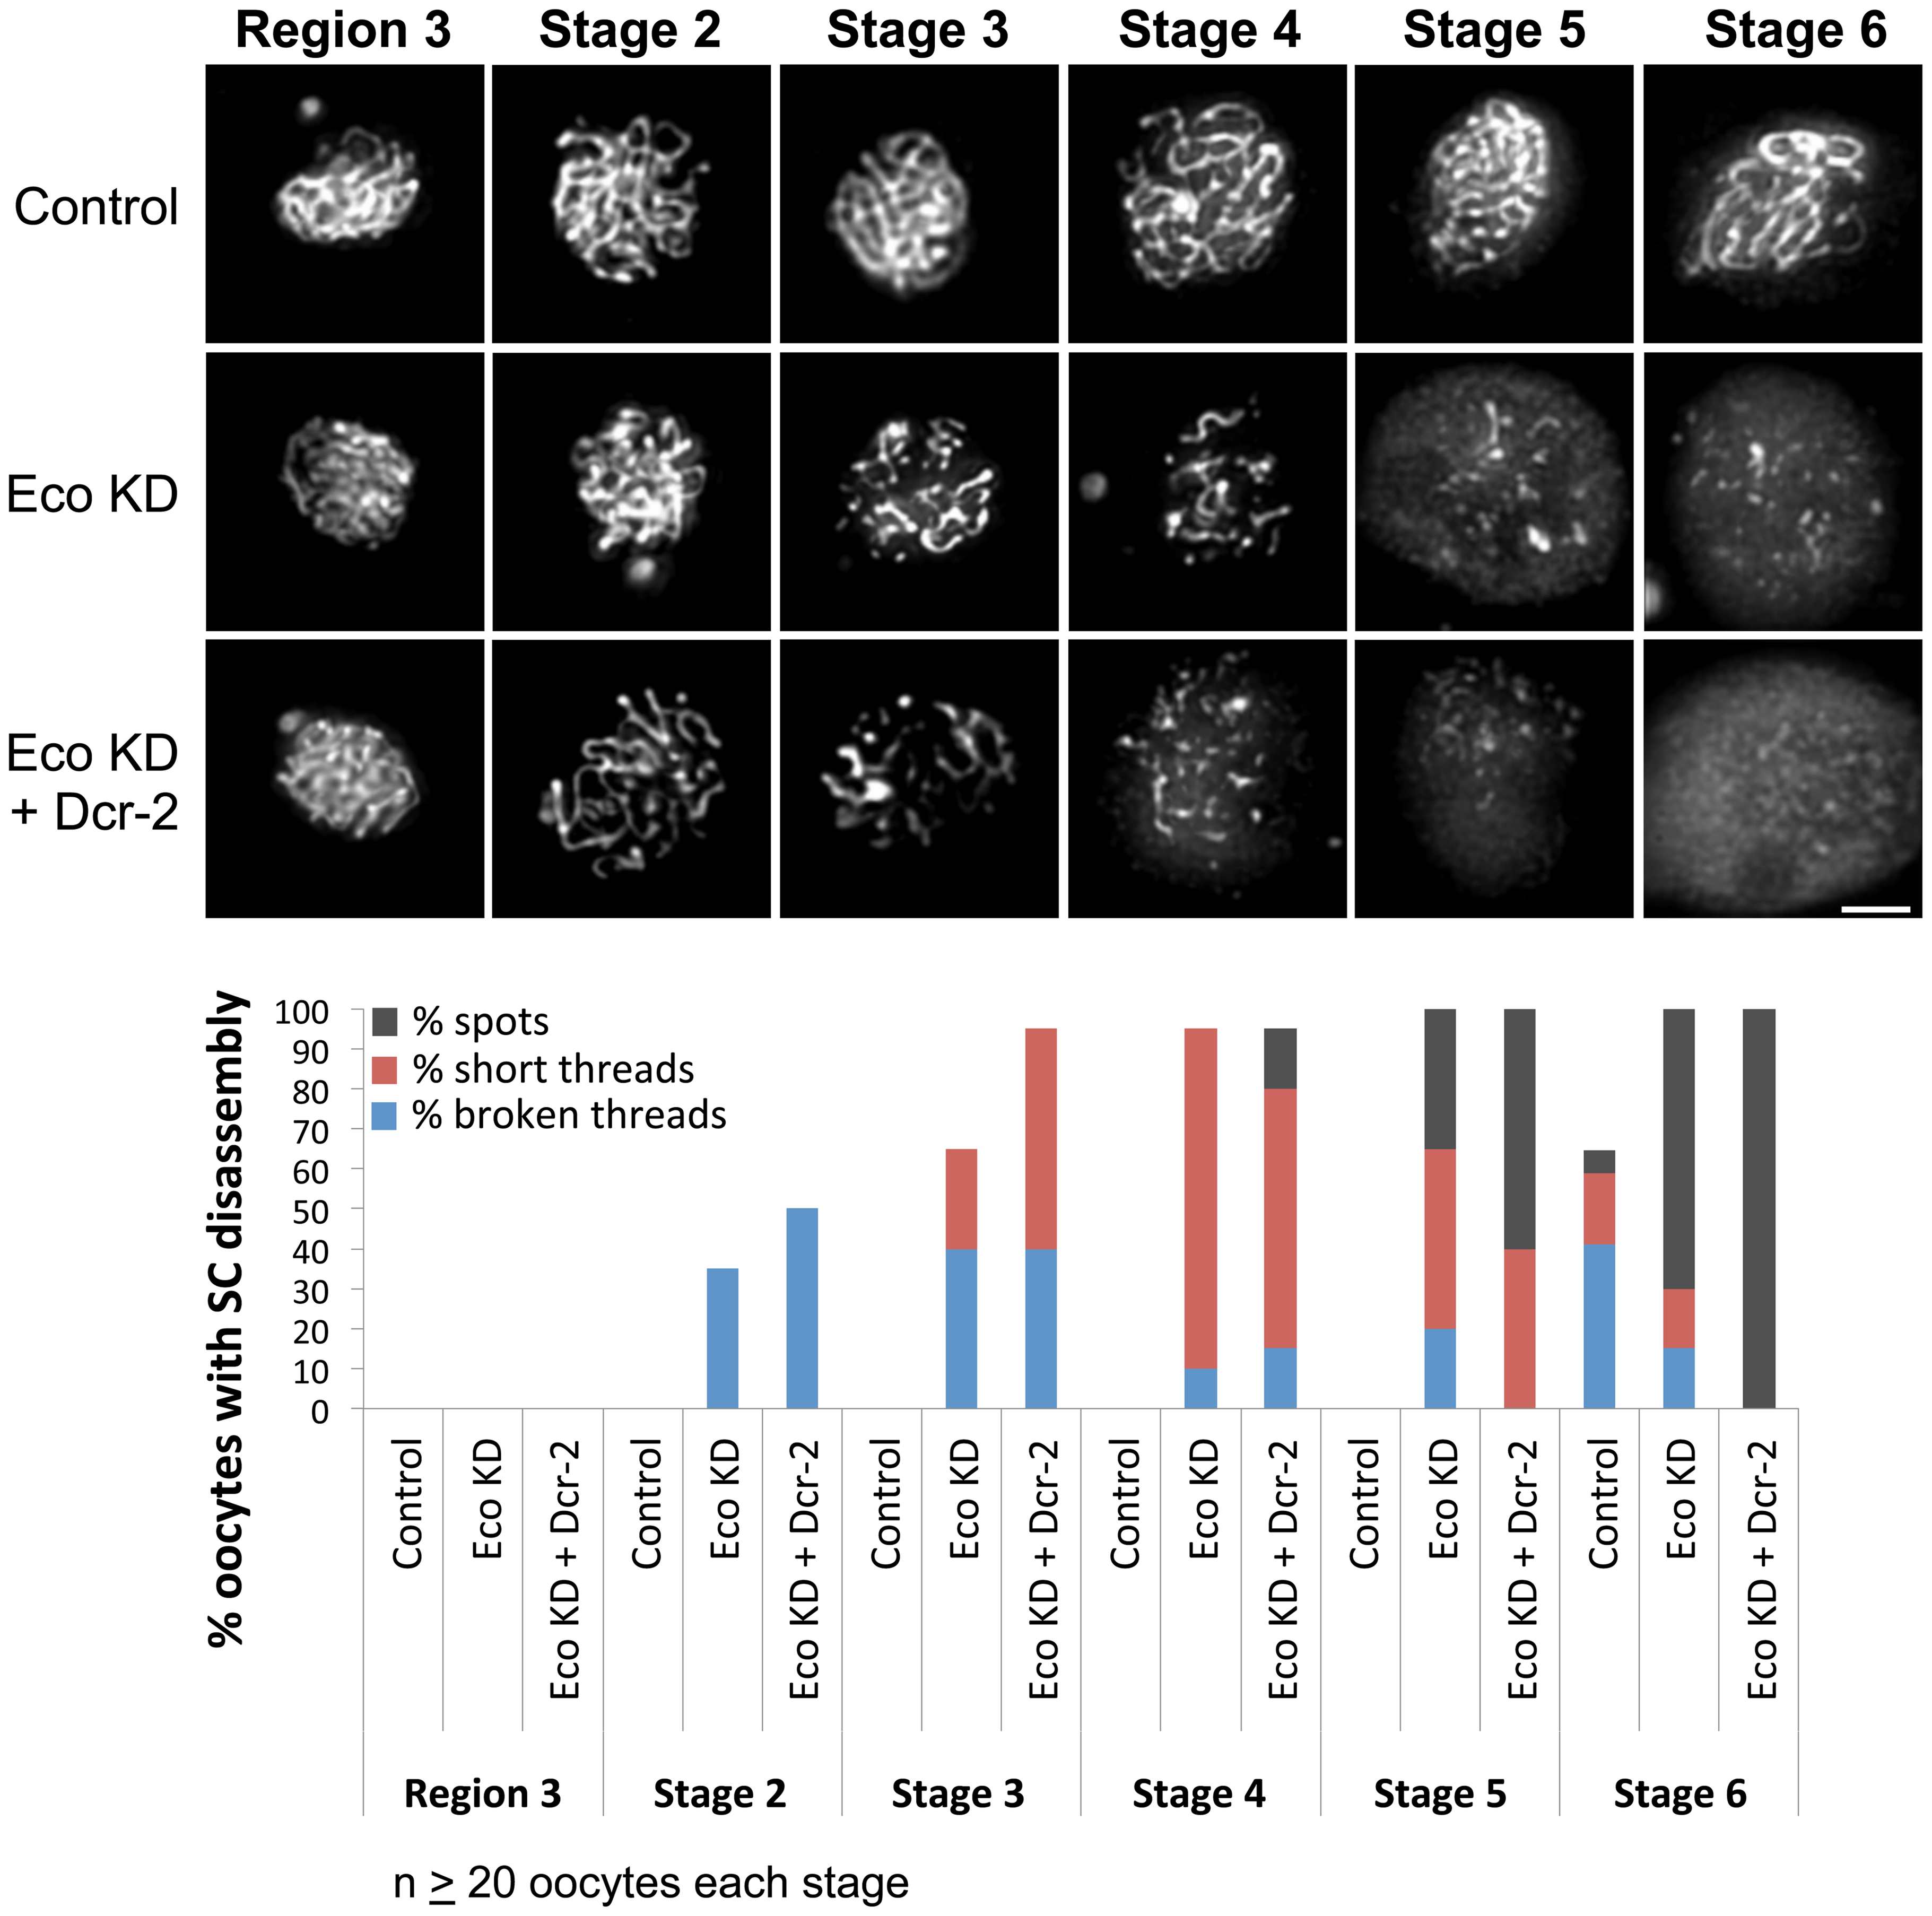 Eco knockdown in mid-prophase causes premature disassembly of the SC.